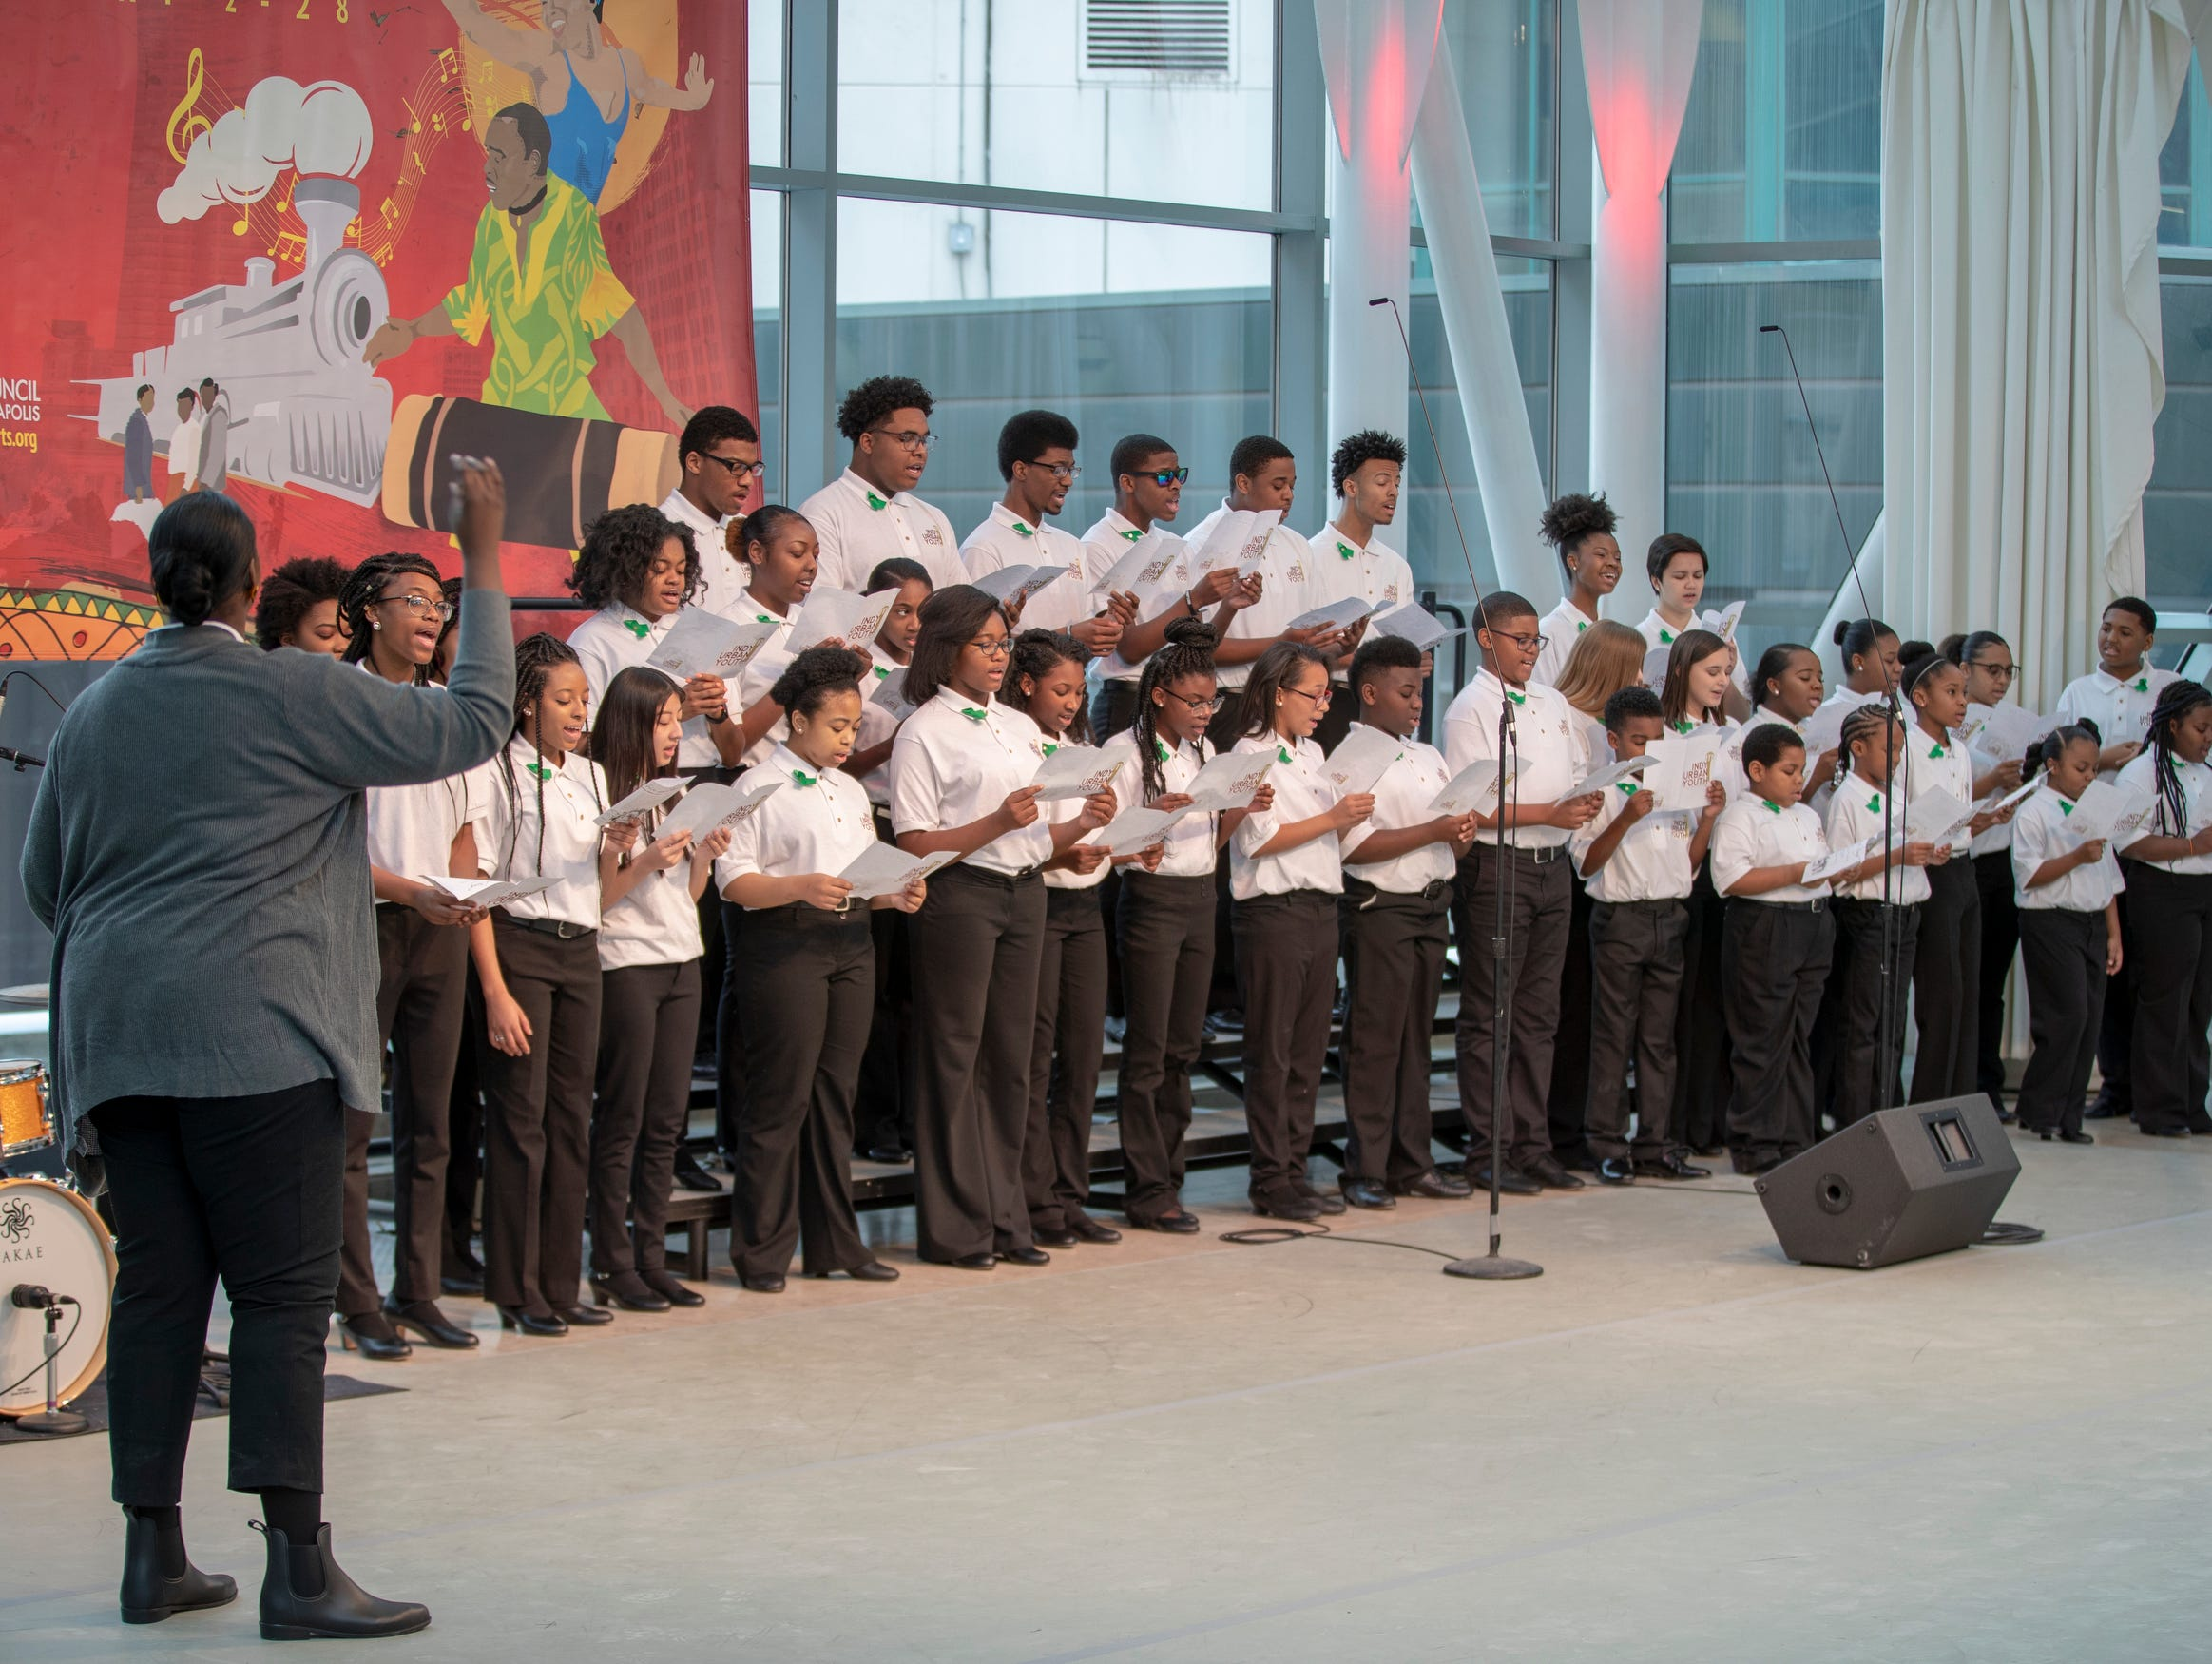 """The Indy Urban Youth Choir sings """"Lift Every Voice and Sing"""" at the 2019 Art and Soul kickoff celebration at the Indianapolis Arts Garden, Indianapolis, Saturday, Feb. 2, 2019."""